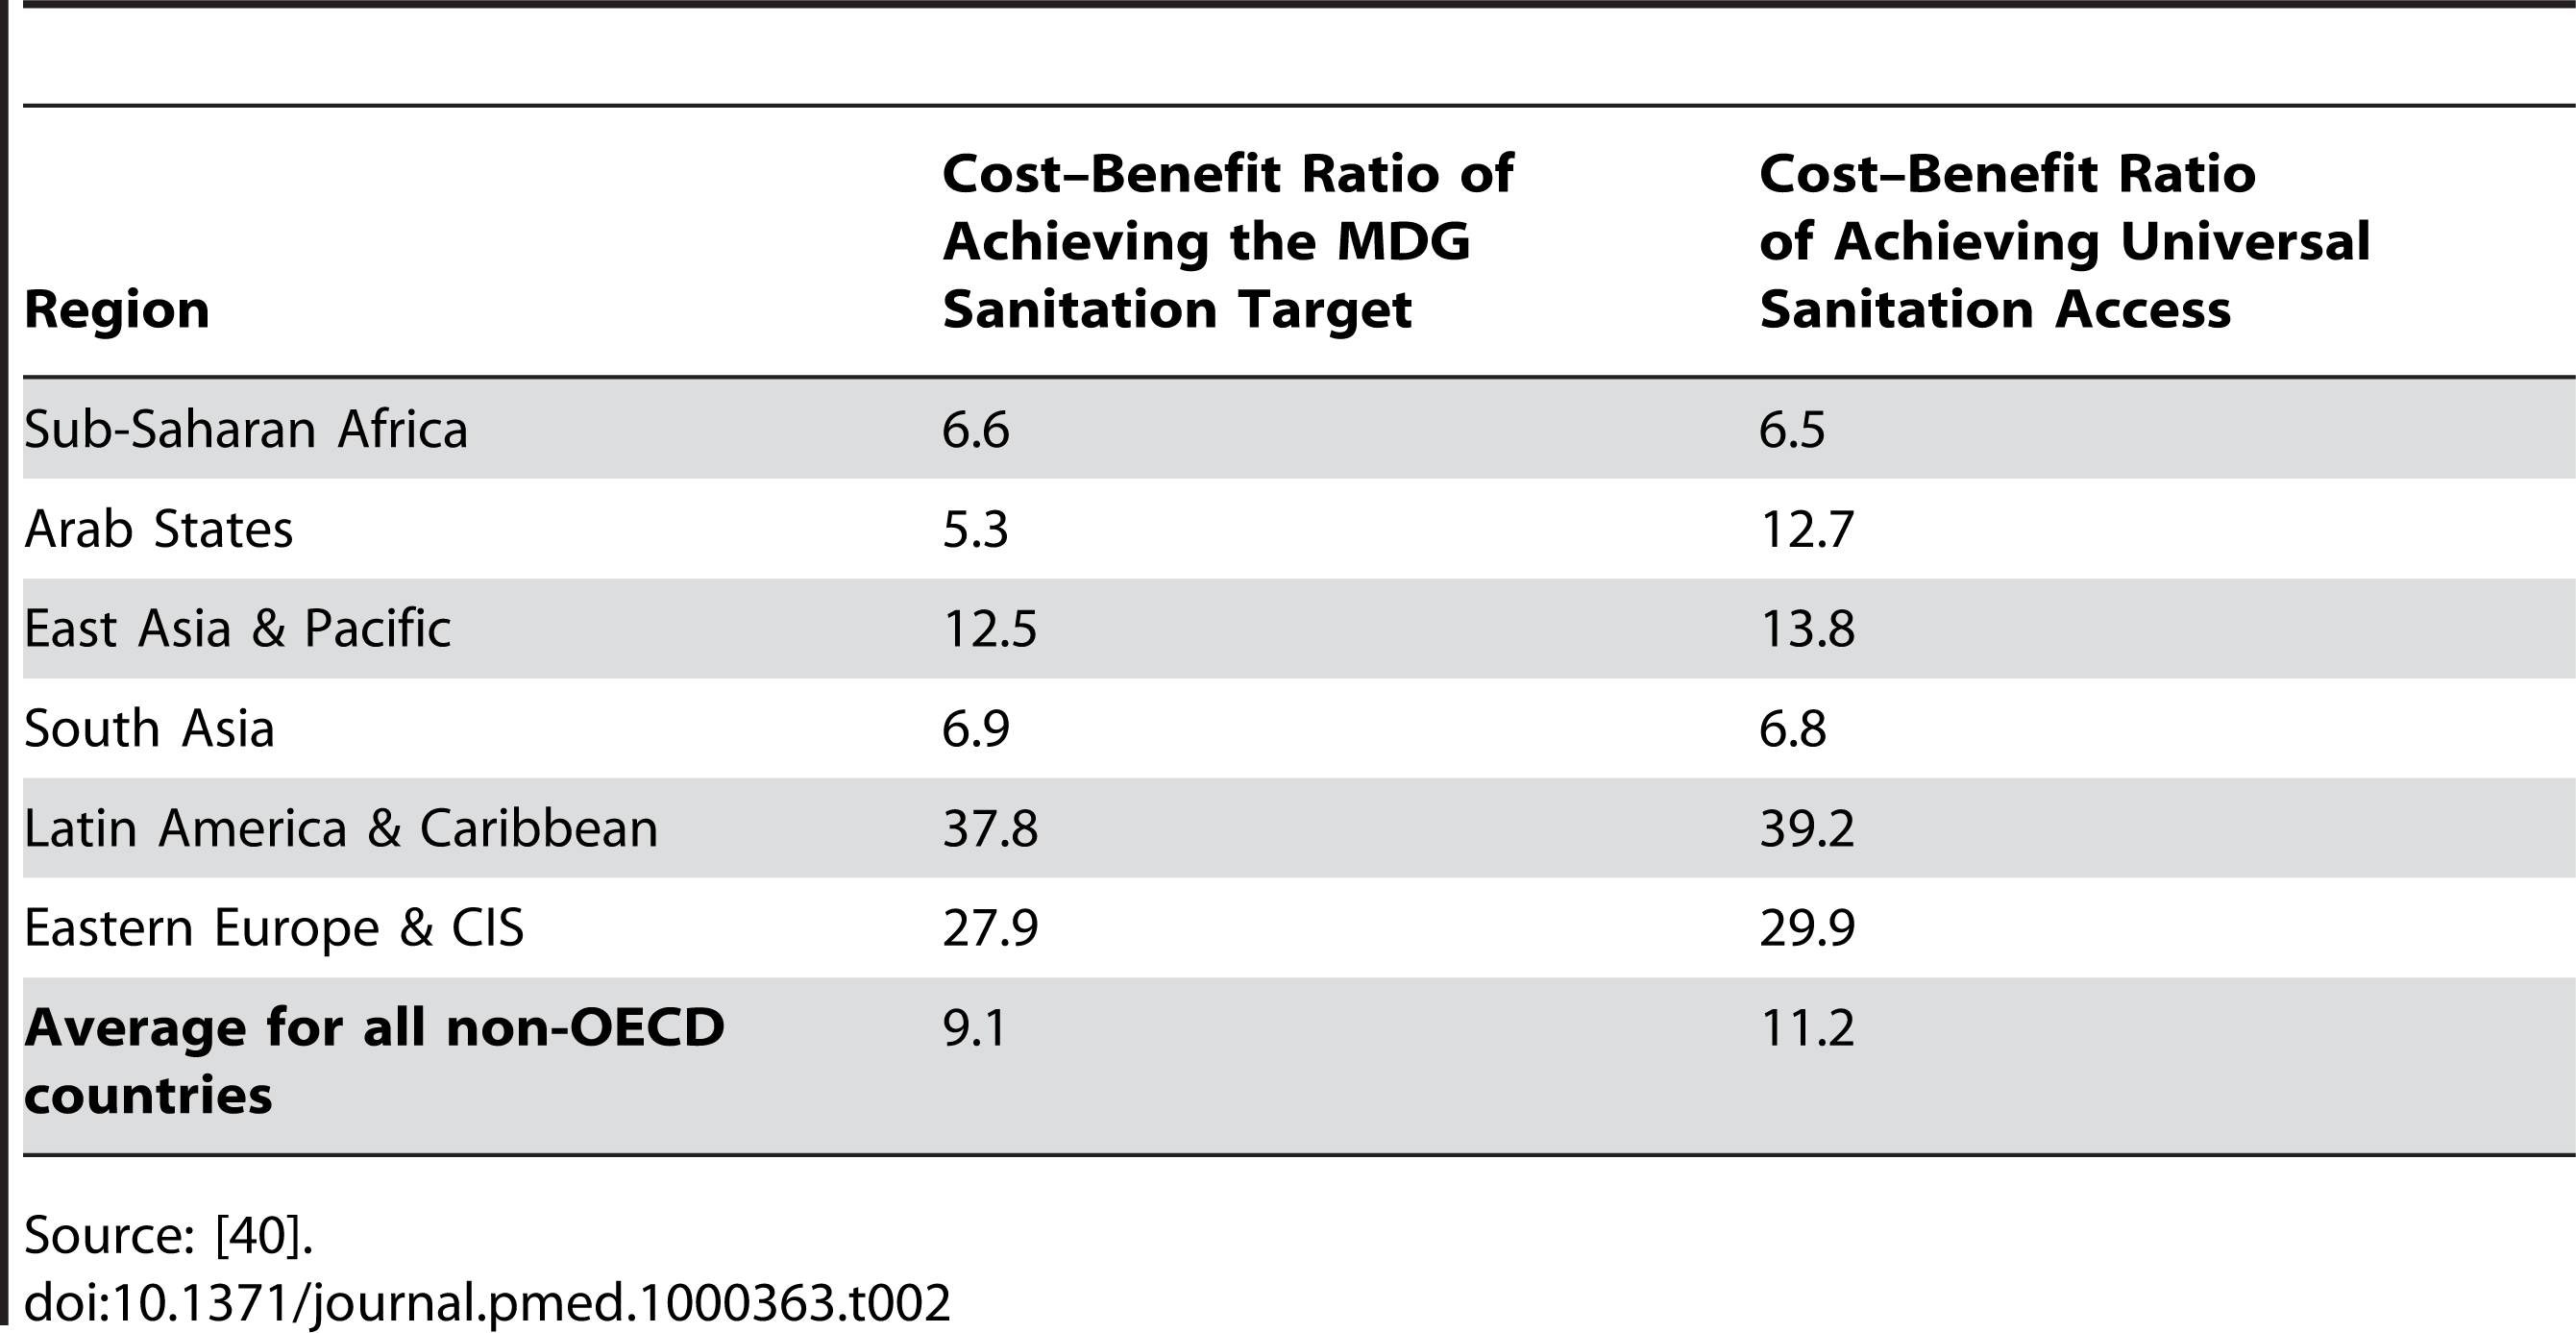 Cost-benefit ratios for achieving the MDG water supply and sanitation targets and for universal water supply and sanitation coverage.